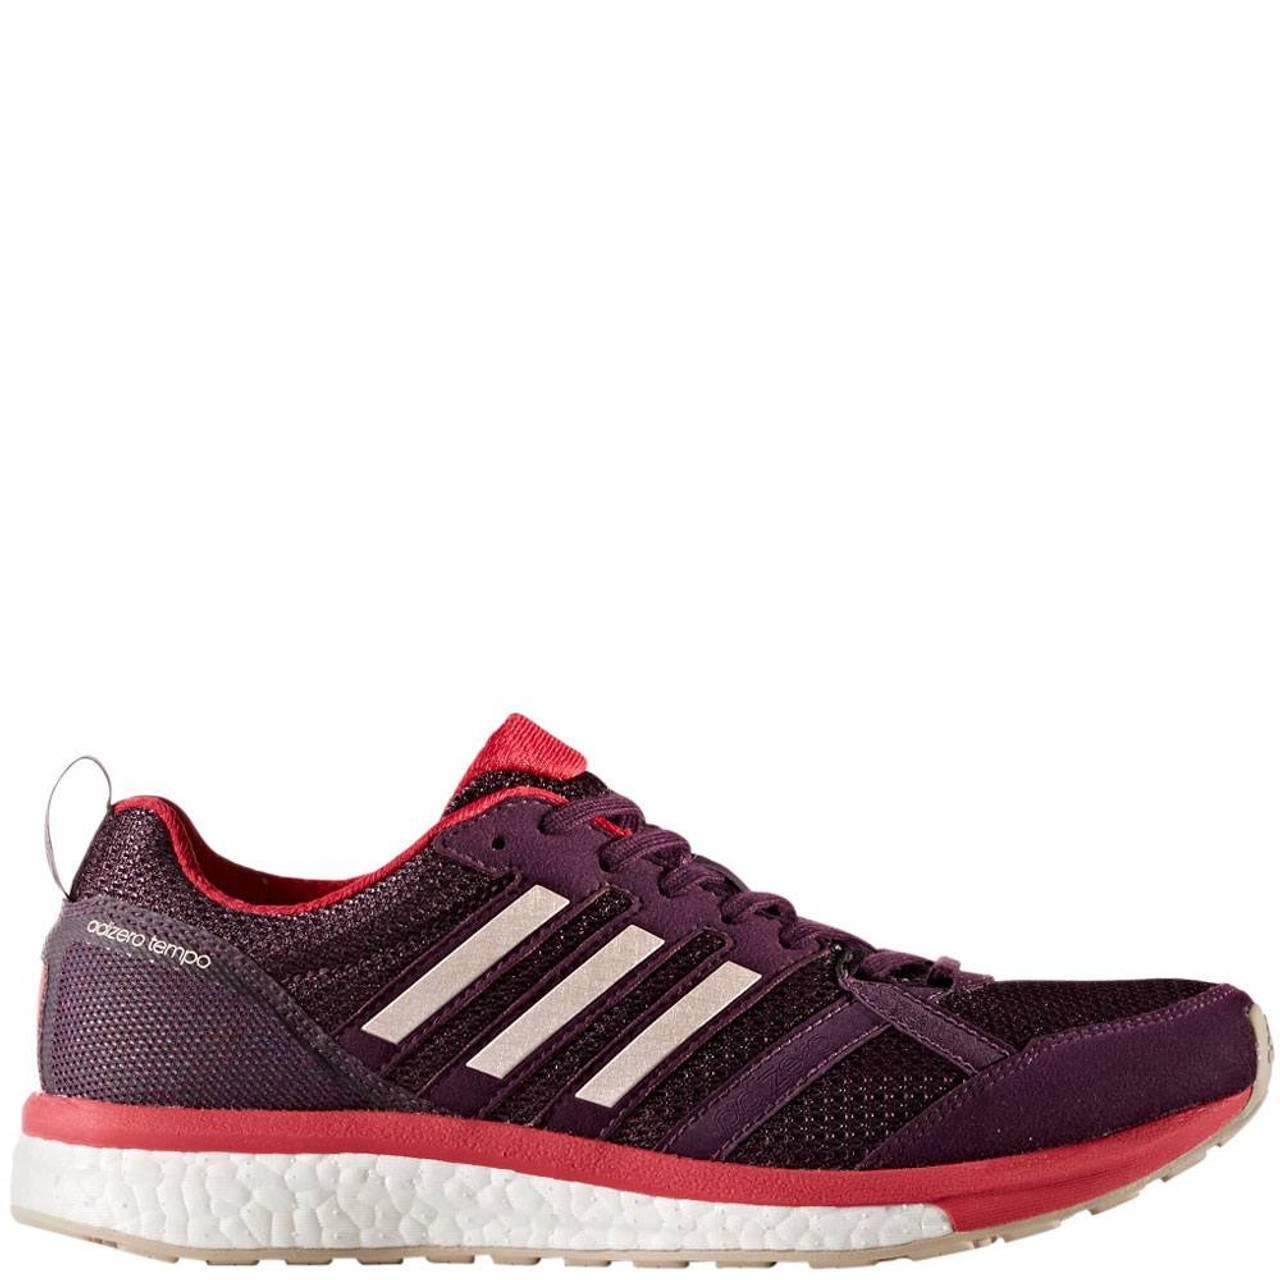 ffc5470a31db4 Womens Adidas Adizero Tempo 9 Category  Running Color  Red Night - Icey  Pink -